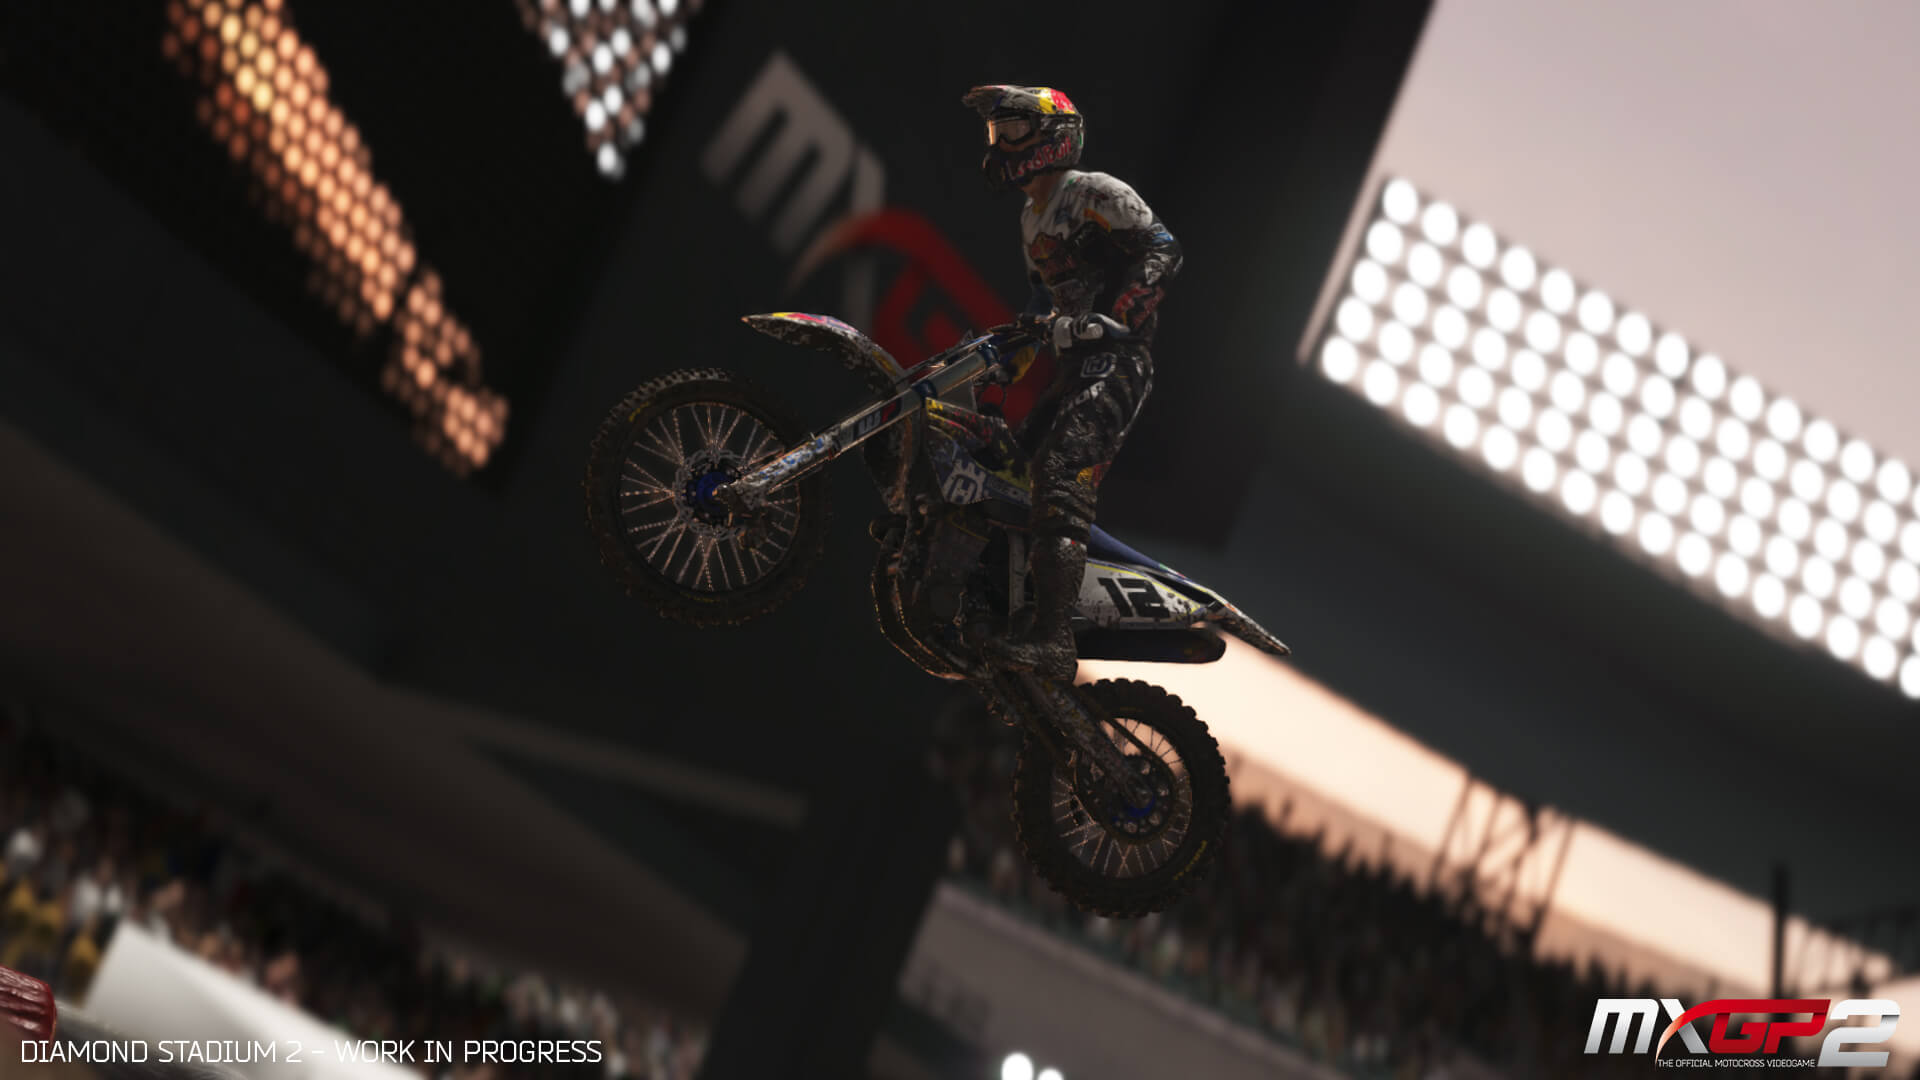 Mxgp 2 The Official Motocross Videogame For Ps4 Xb1 Pc Reviews Game Mx Gp Opencritic